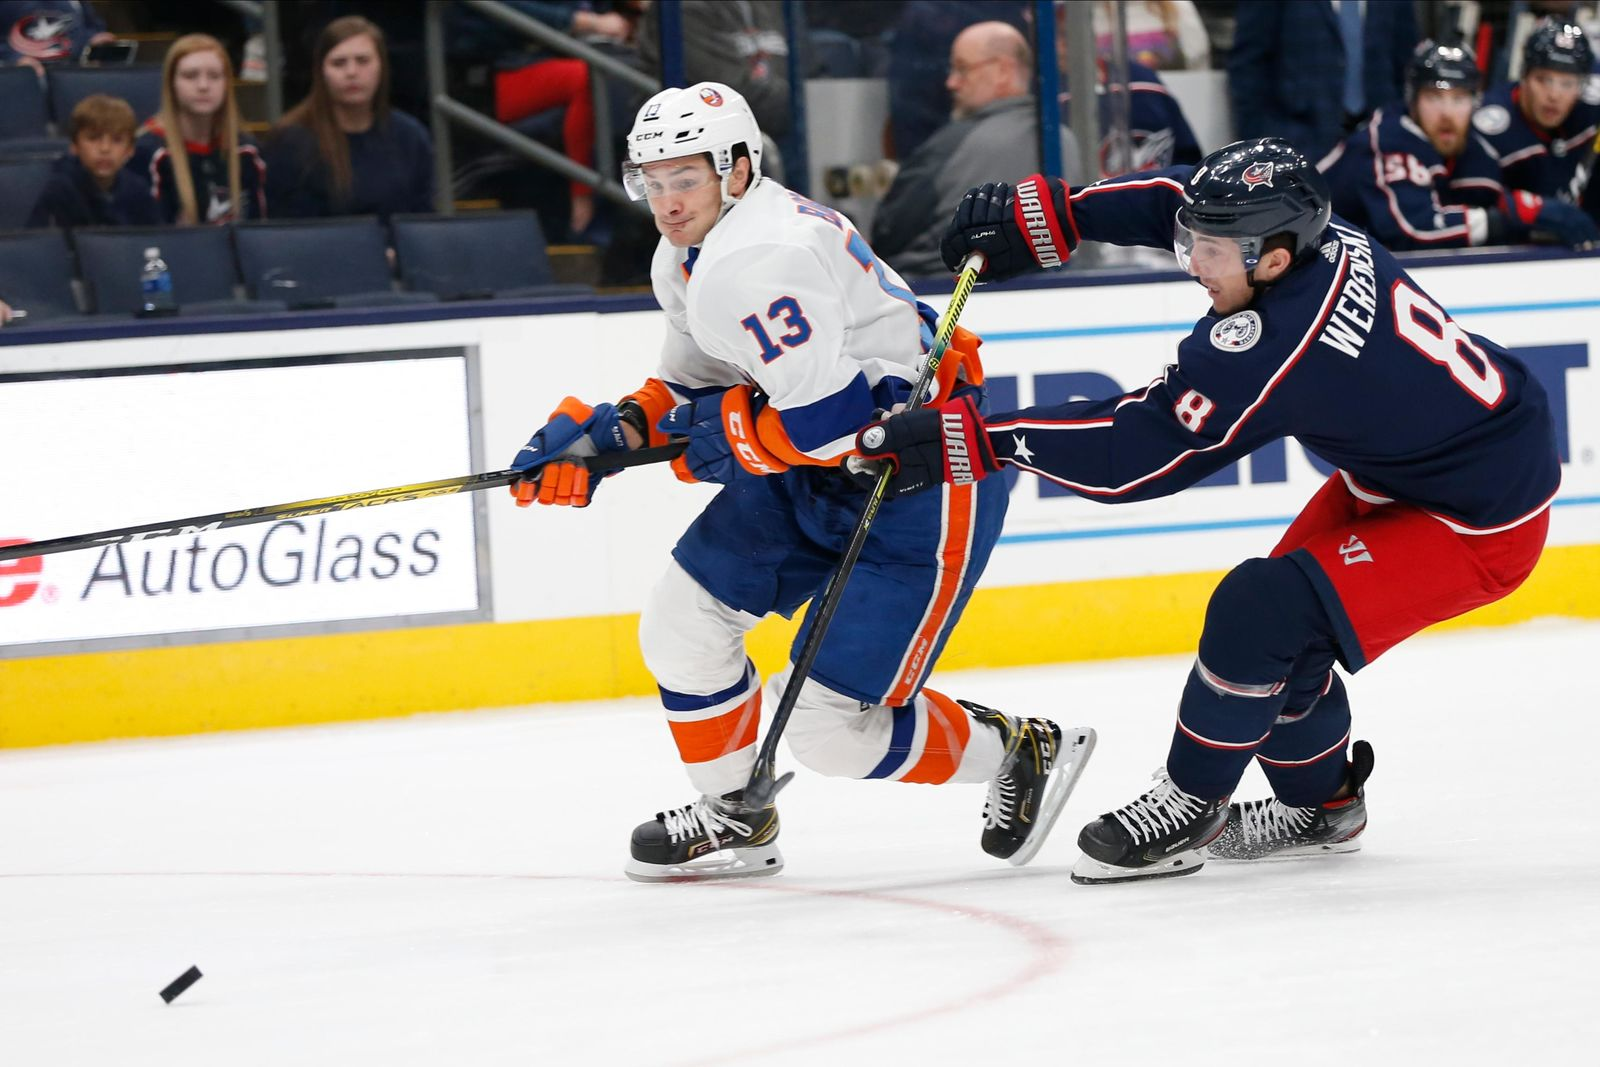 New York Islanders' Mathew Barzal, left, carries the puck up ice as Columbus Blue Jackets' Zach Werenski defends during the first period of an NHL hockey game Saturday, Oct. 19, 2019, in Columbus, Ohio. (AP Photo/Jay LaPrete)